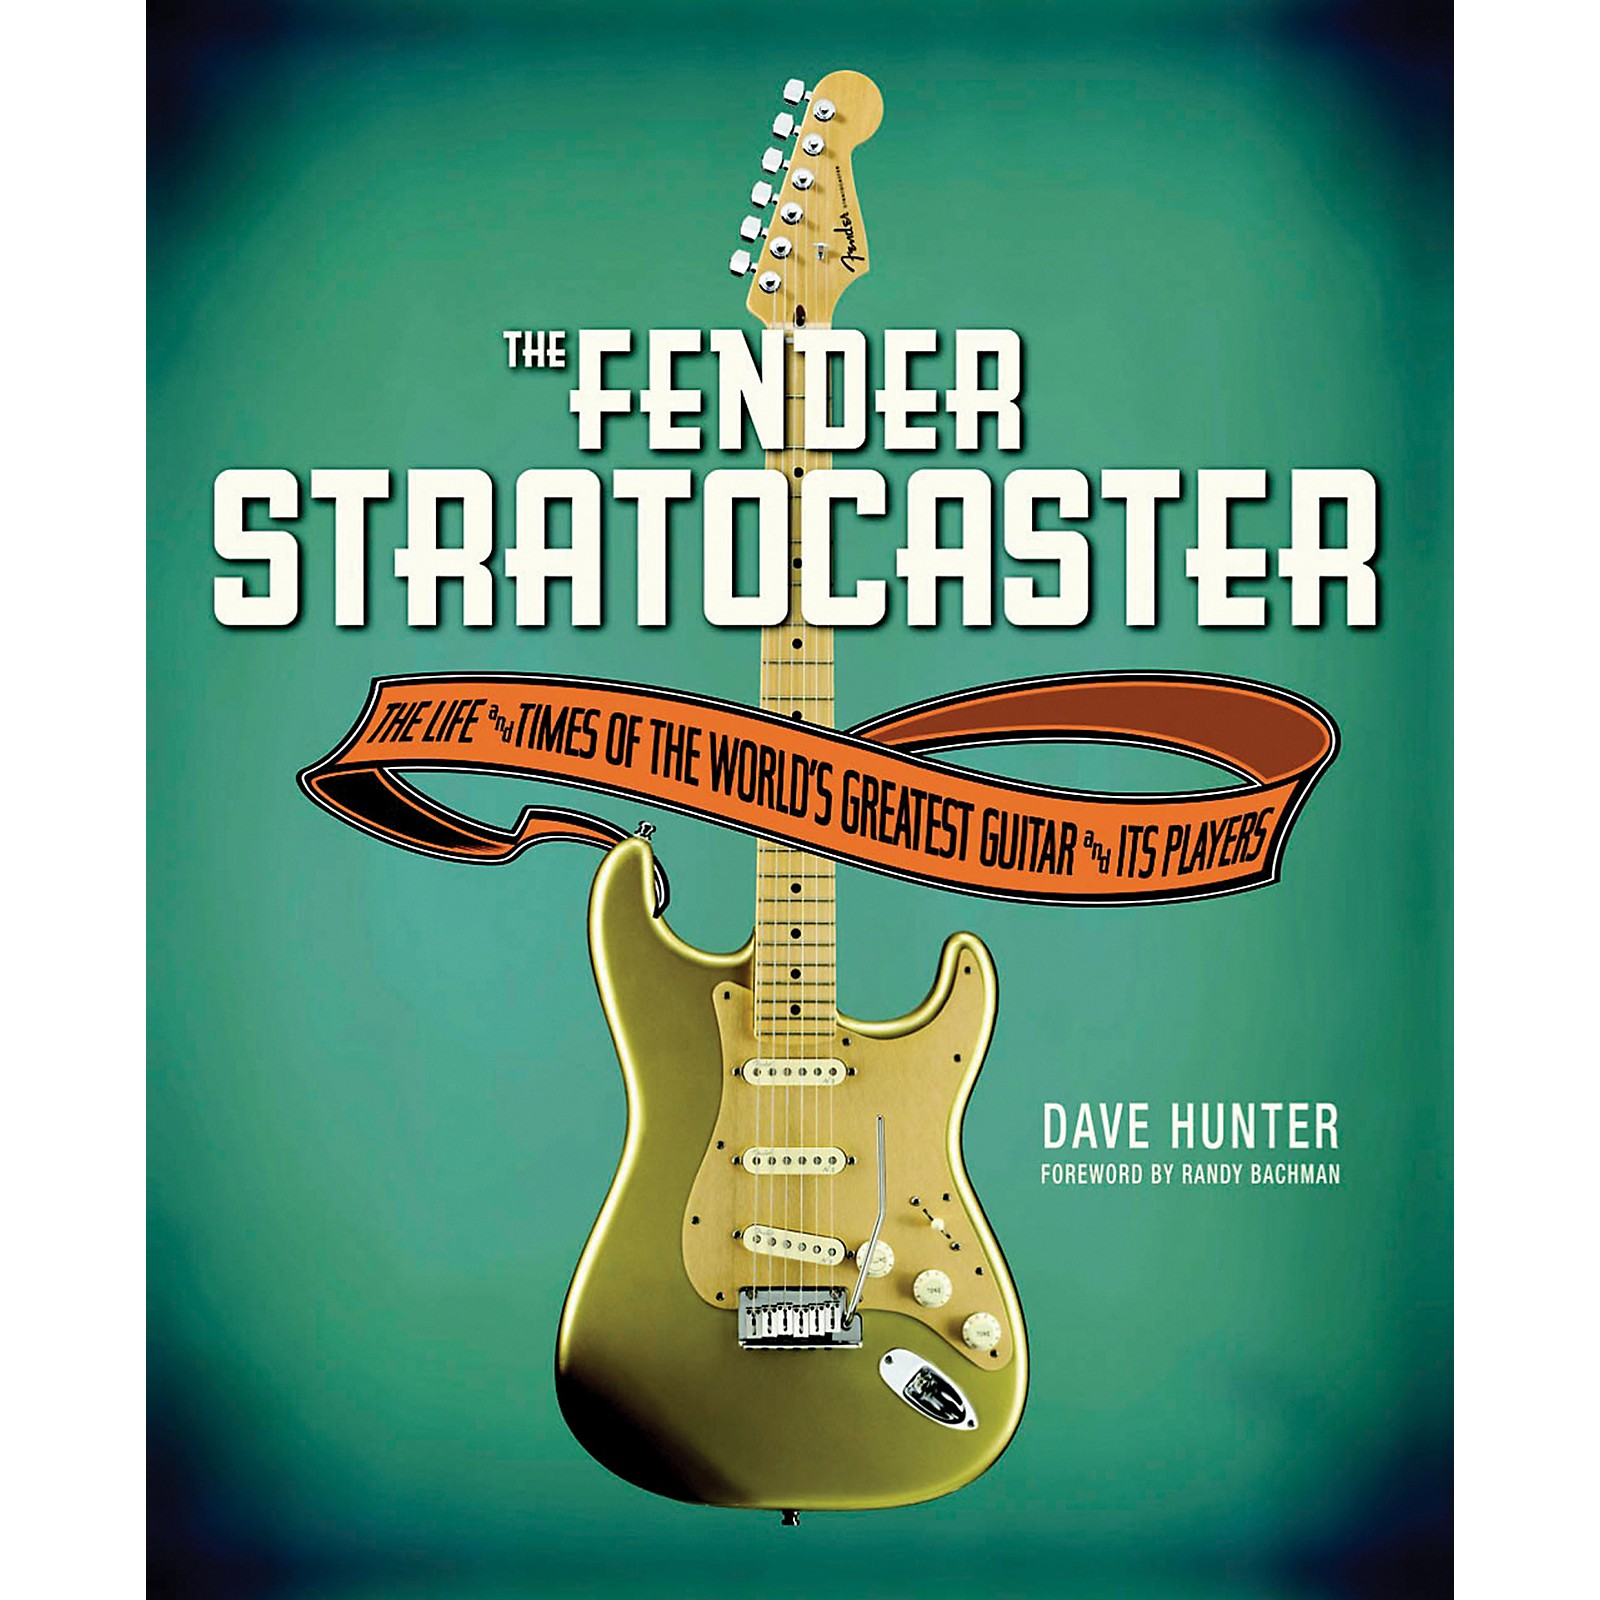 Hal Leonard The Fender Stratocaster - The Life and Times of the World's Greatest Guitar and Its Players Book